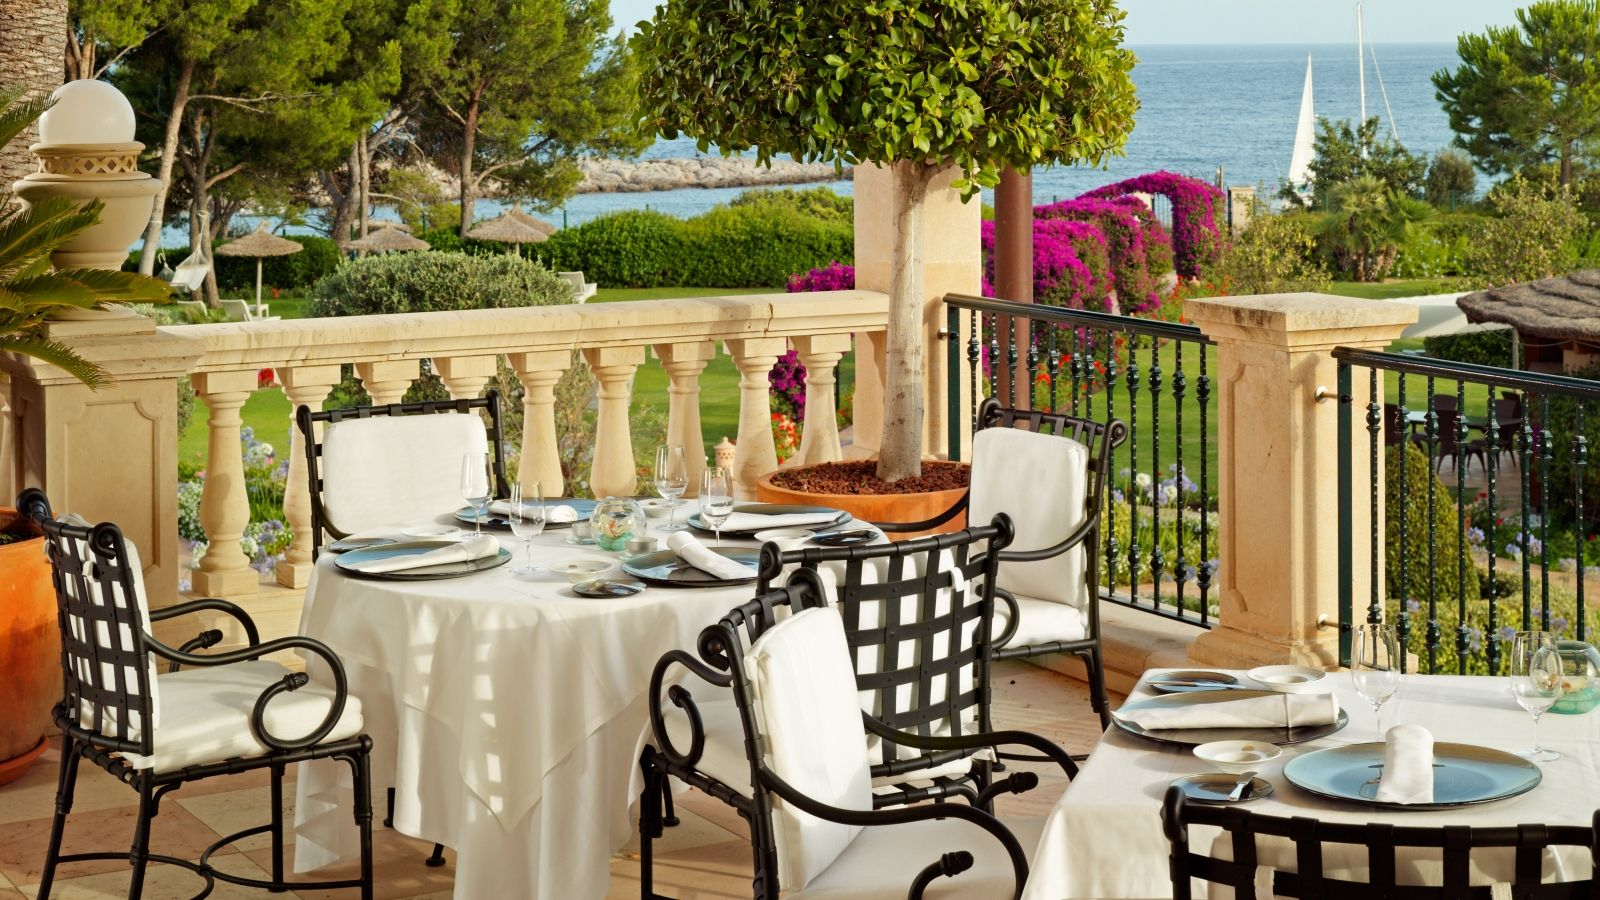 A culinary Pearl awarded with a Michelin star at St. Regis Mardavall Mallorca Resort